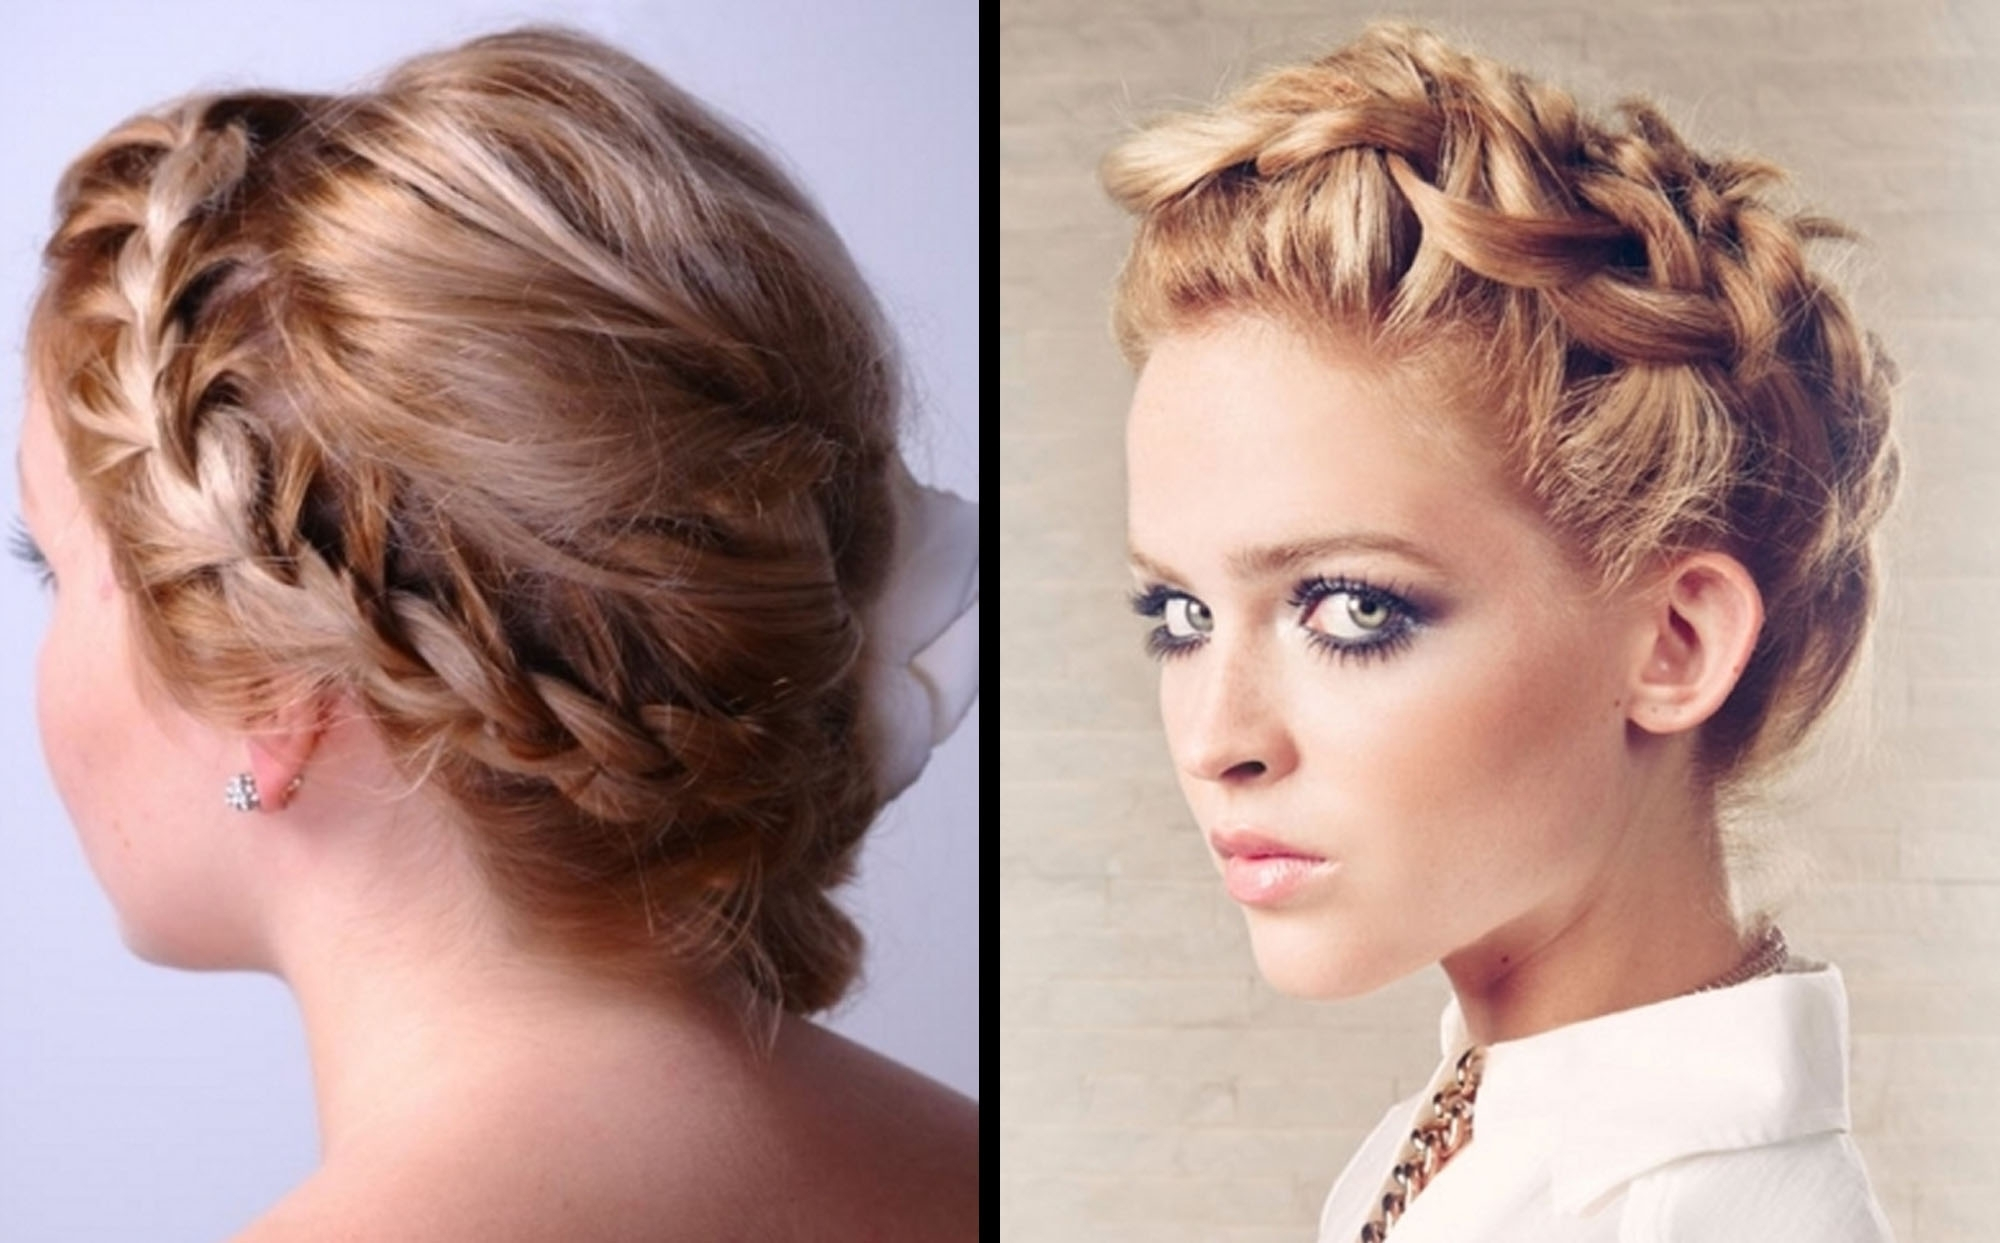 Updo Prom Hairstyles Short Prom Hairstyles Braids Medium Hair Styles Within Wavy Hair Updo Hairstyles (View 12 of 15)